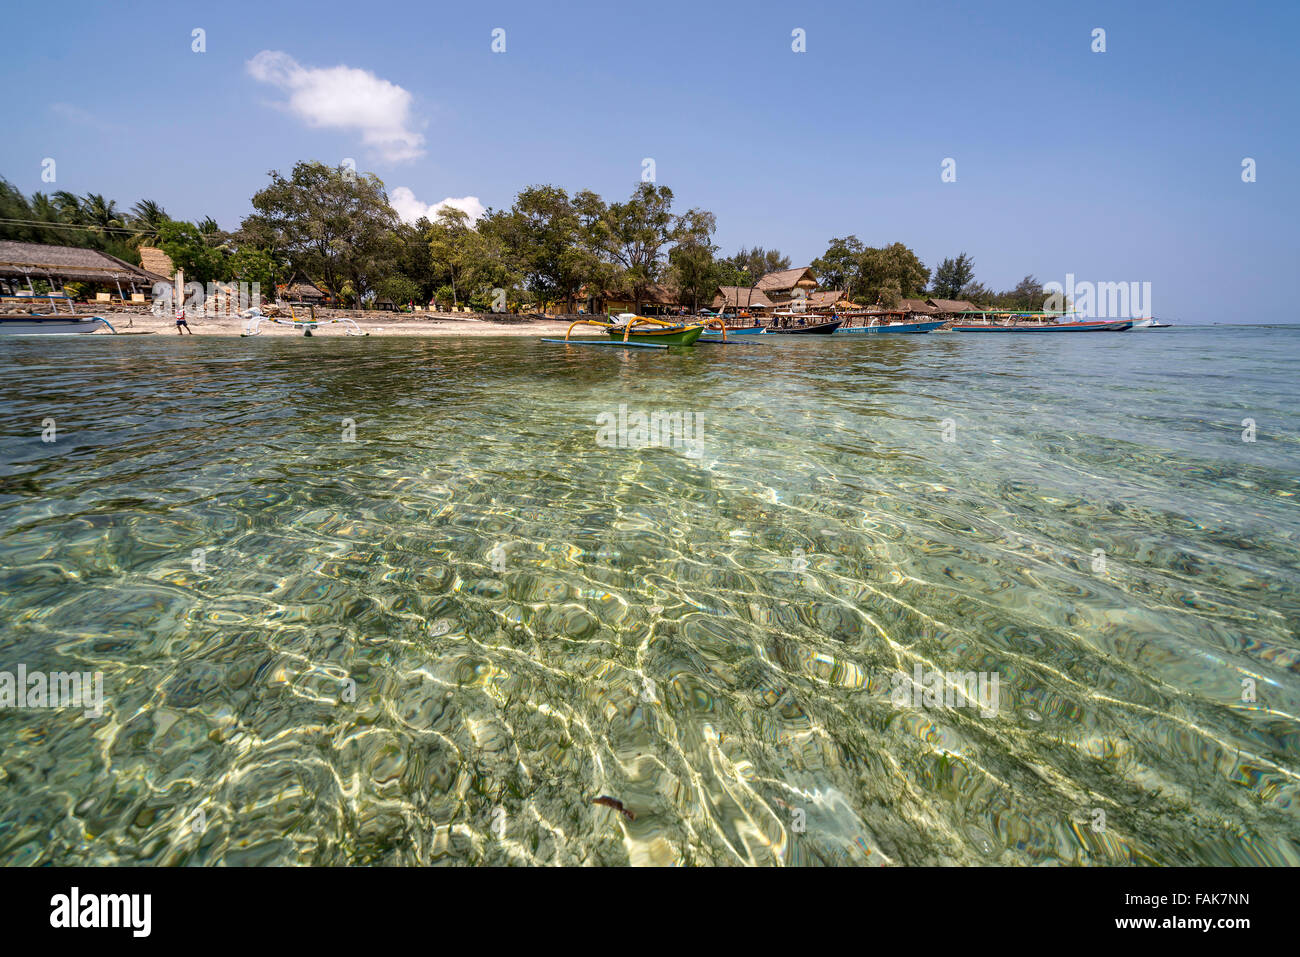 Beach on the small island Gili Air, Lombok, Indonesia, Asia - Stock Image